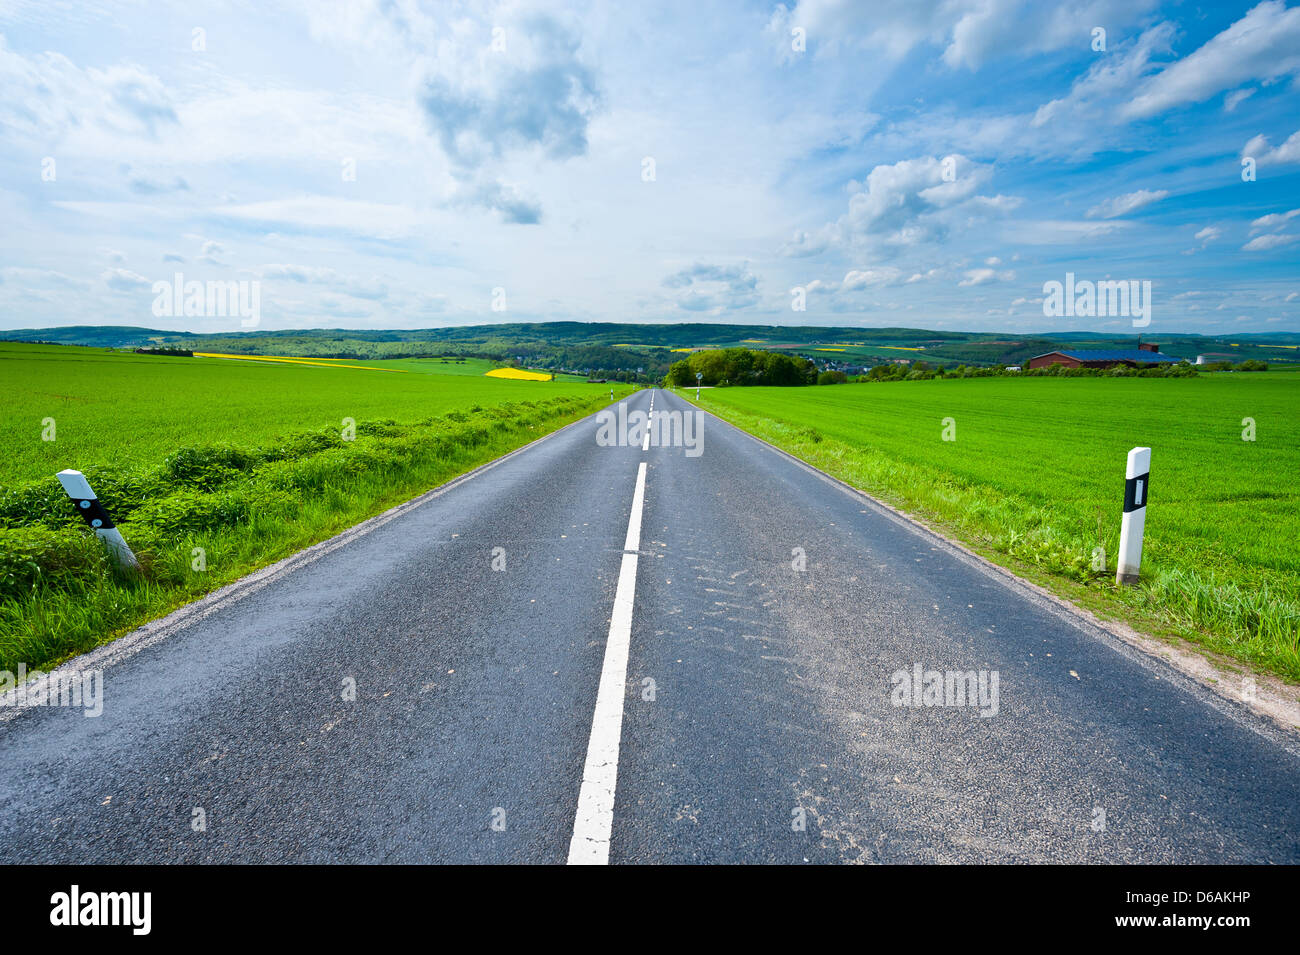 Strait  Road - Stock Image